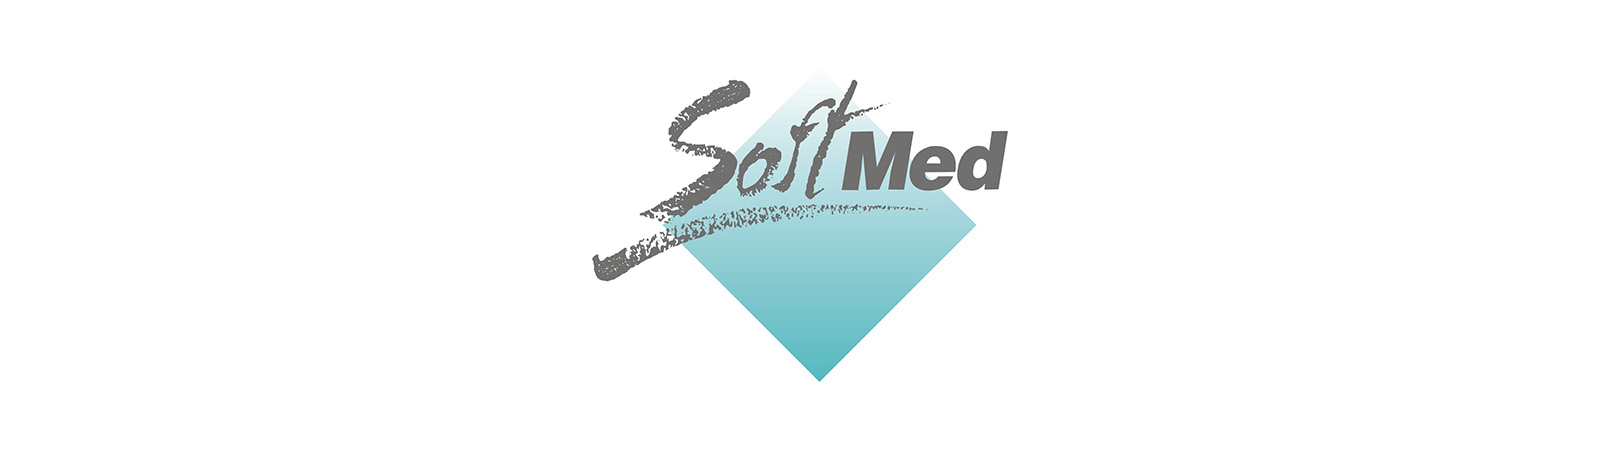 SoftMed Systems, Inc. Logo Image